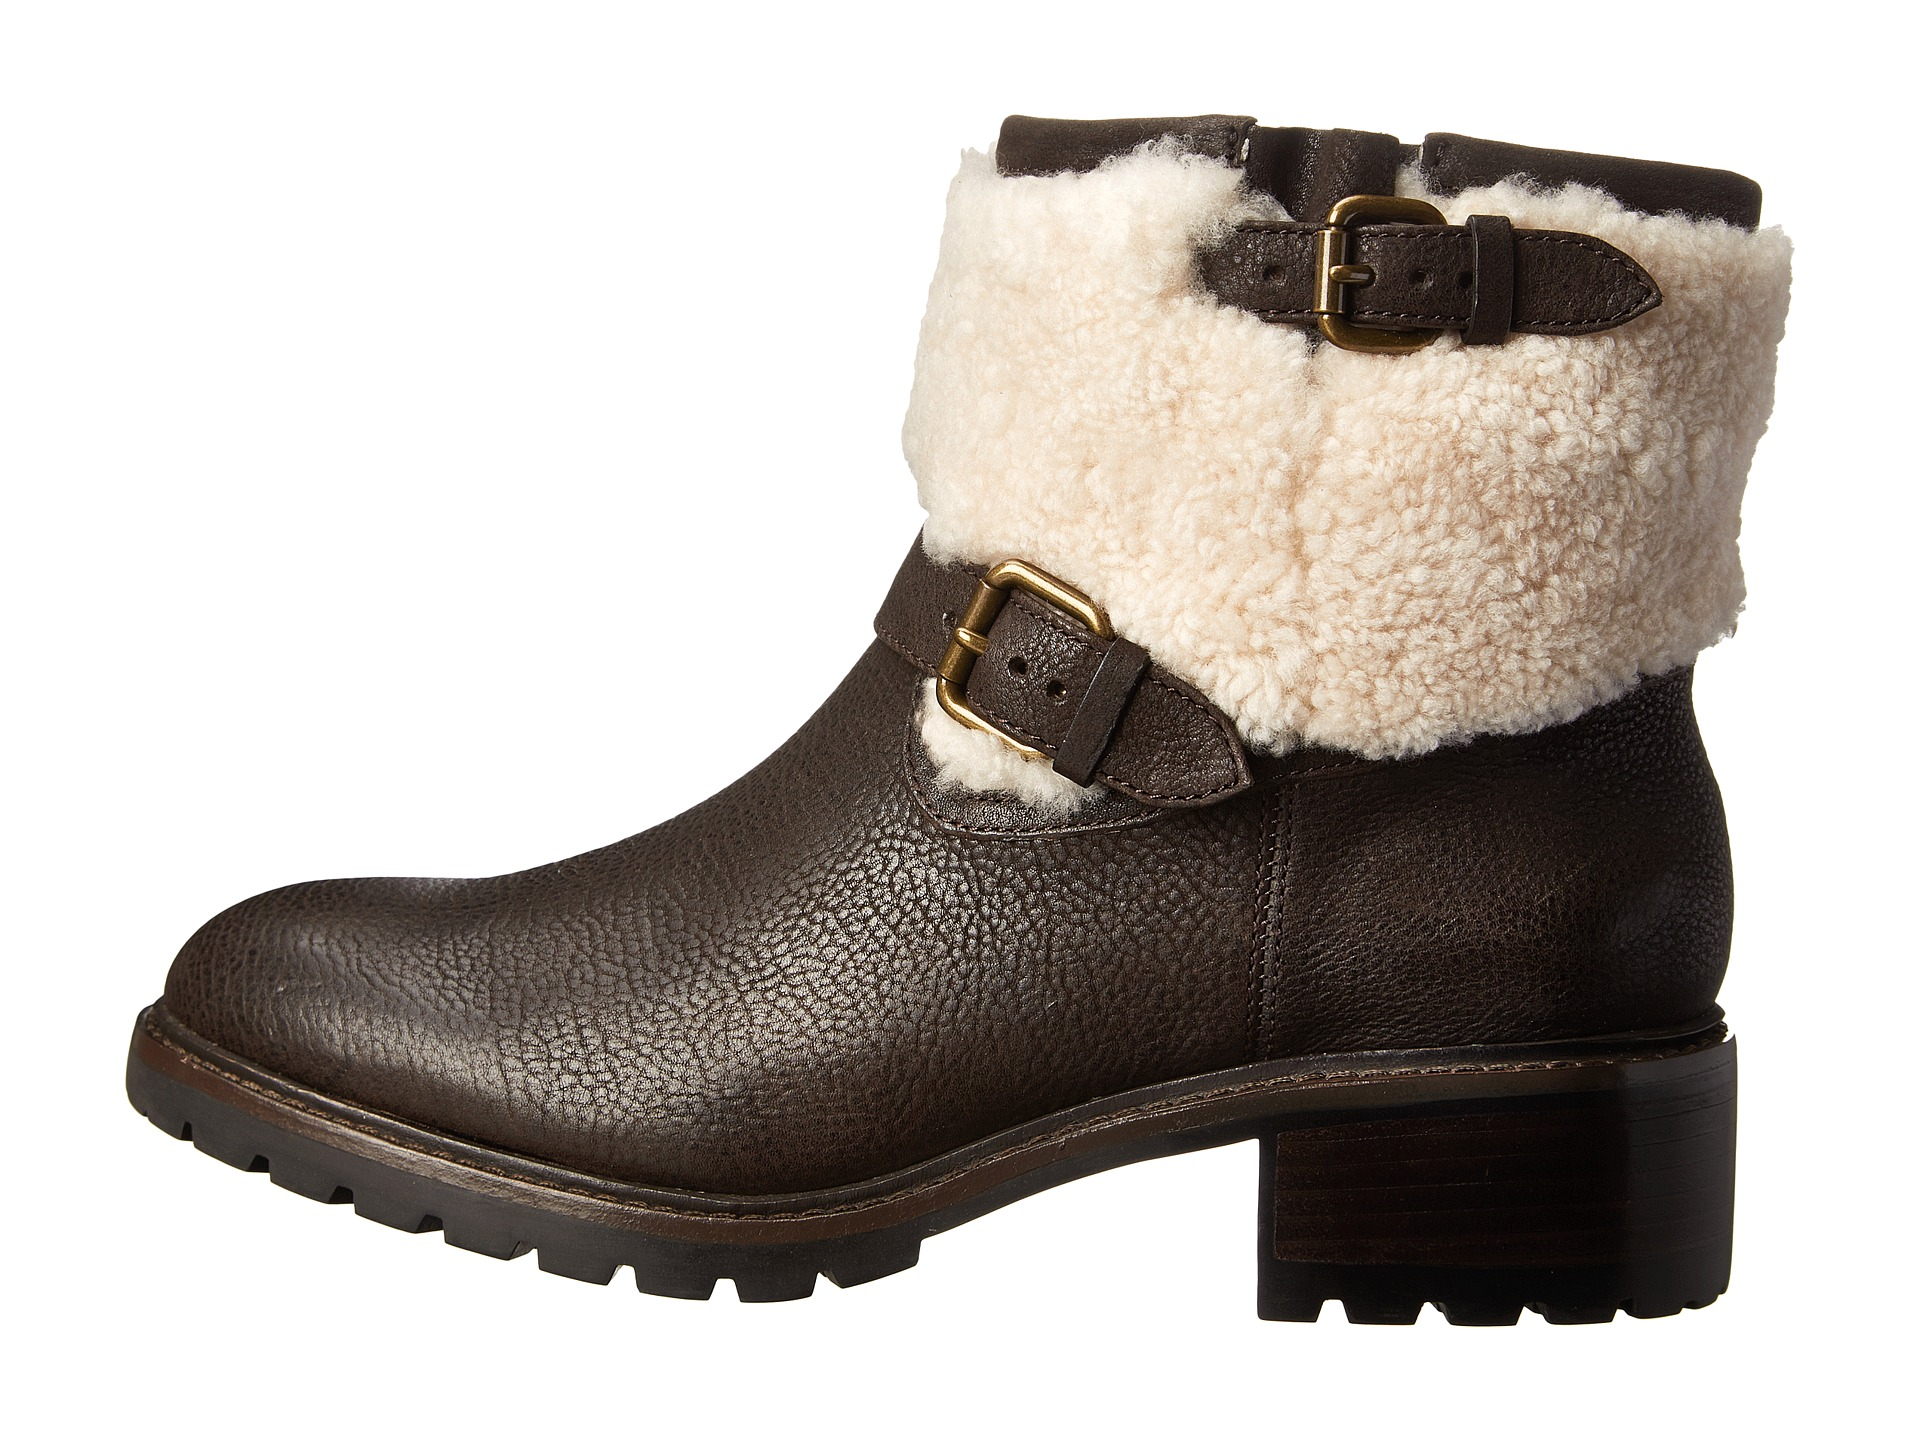 coach boots shoes women shipped free at zappos auto